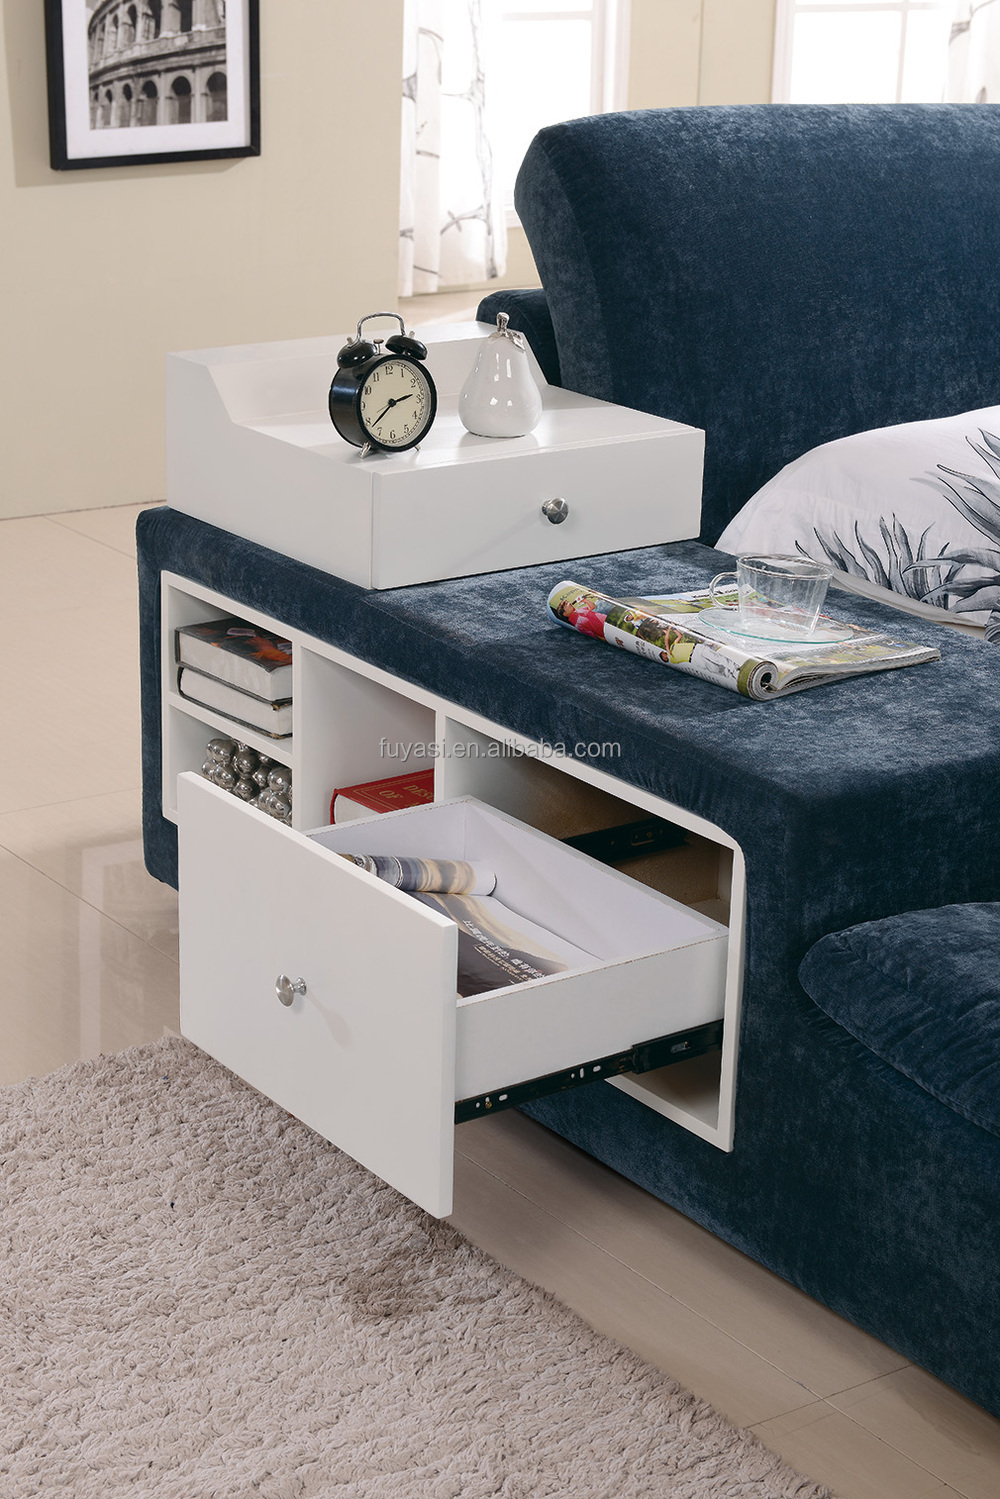 Drawer Bed Modern Bedroom Furniture King Size Night Stand Bedside Table Hotel Loft